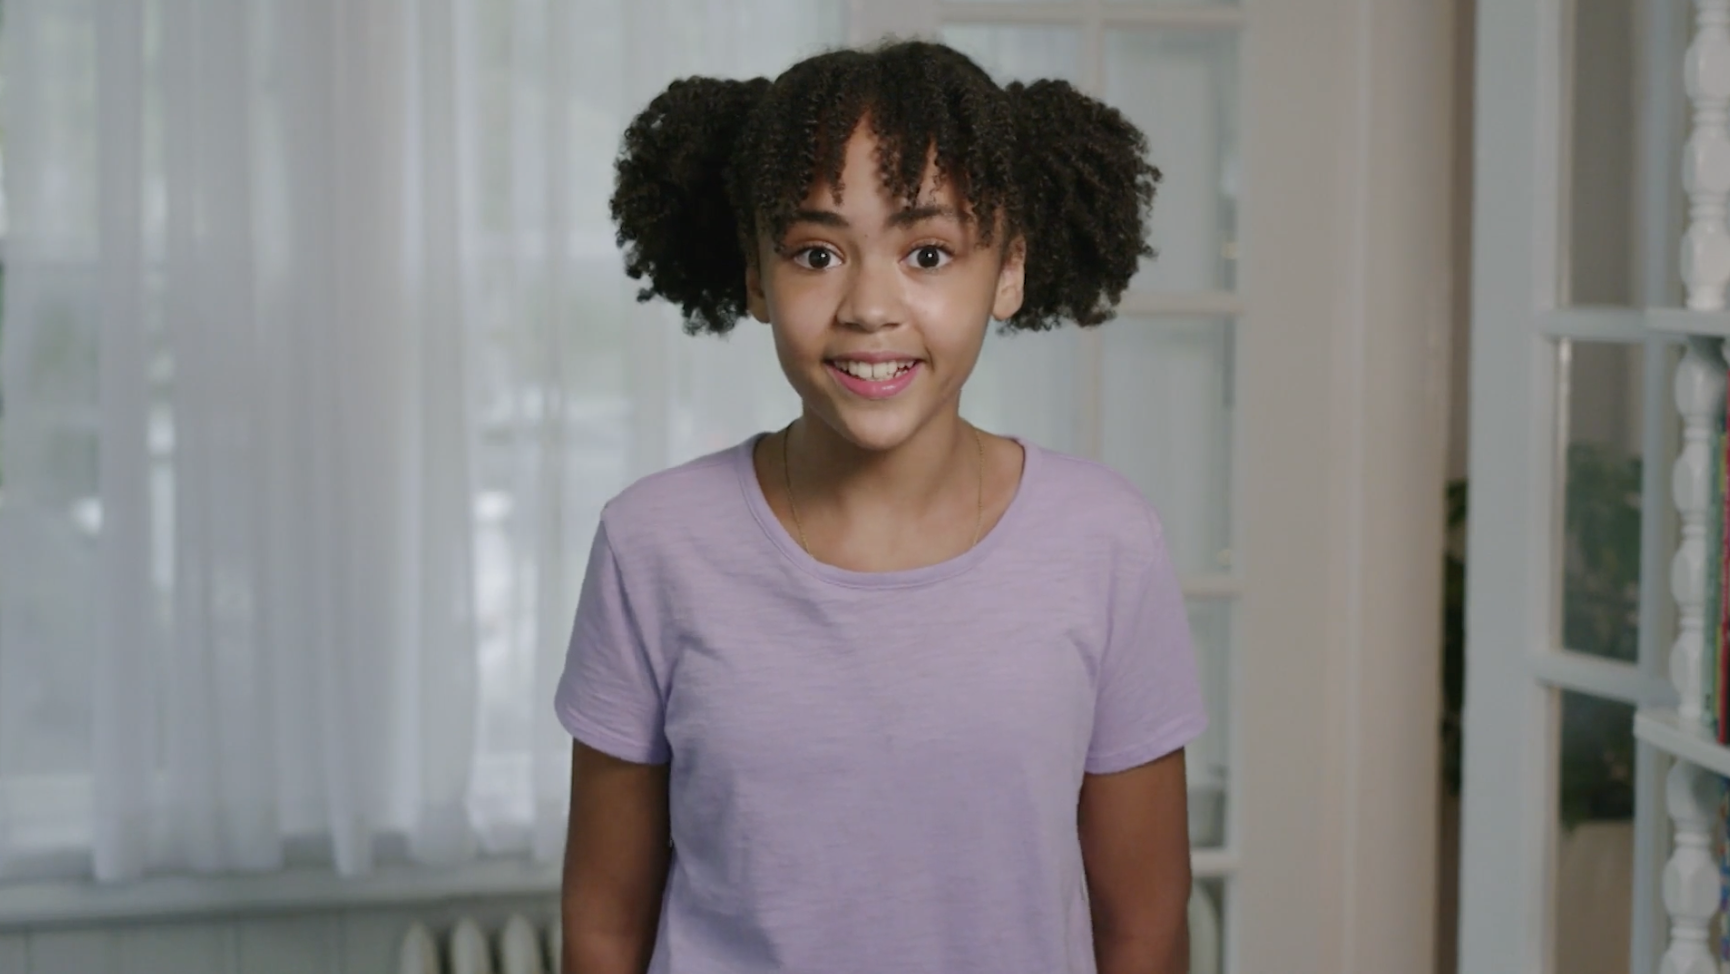 A young Black girl, shown from the waist up, smiles at the camera. She has bangs and two big, curly pigtails on either side of her head. She is wearing a lavender t-shirt and is standing in front of a window with sheer white curtains.